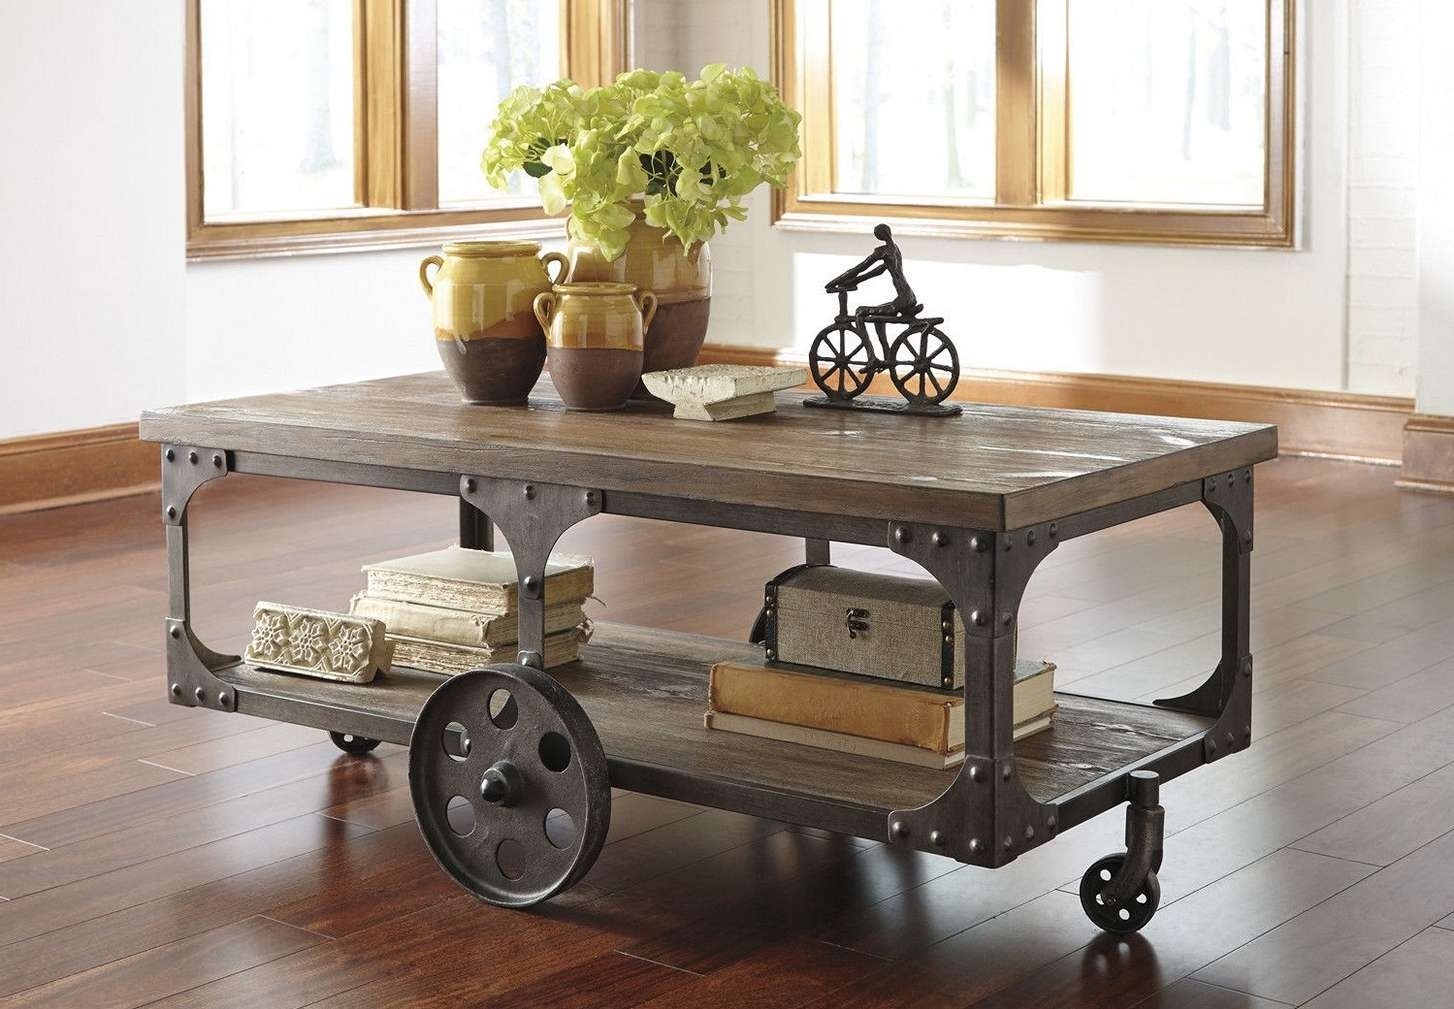 Coffee Tables : Simple Rustic Coffee Table On Wheels Decoration With Regard To Well Liked Rustic Coffee Table With Wheels (View 4 of 20)